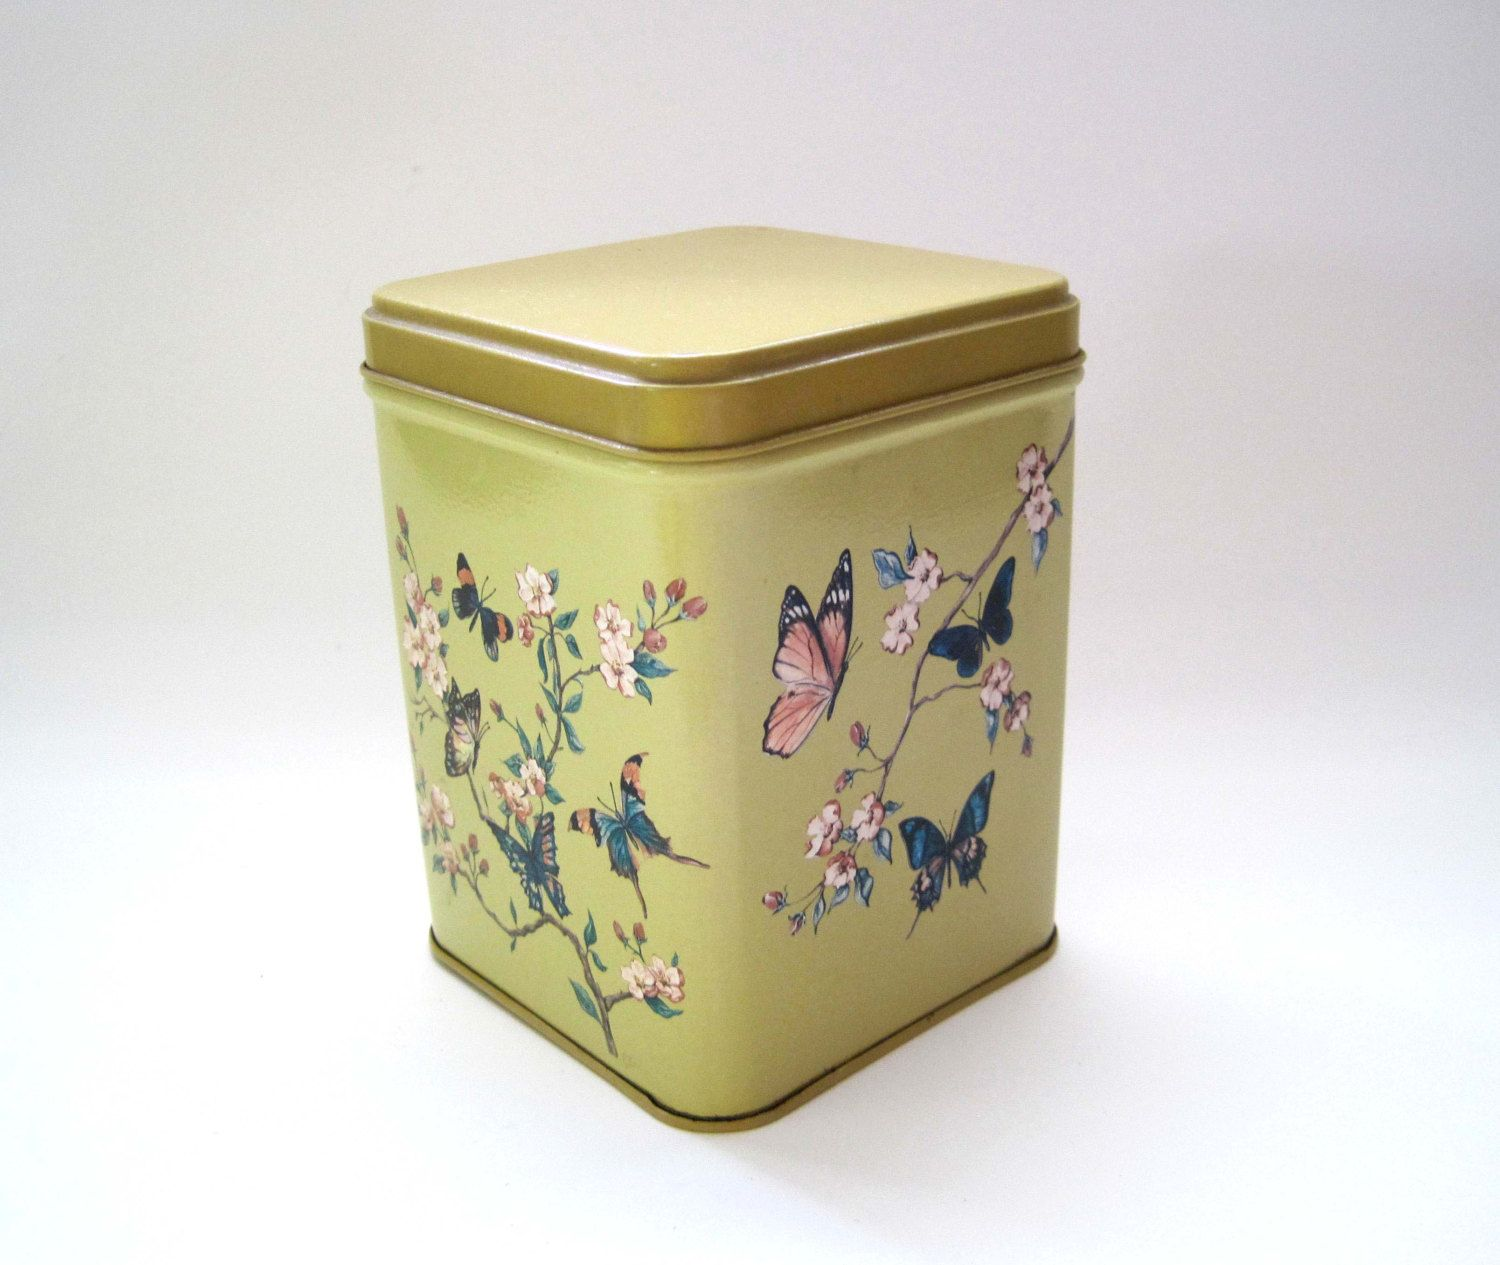 Vintage Tin, Butterfly Design, Butterflies, Tea Tin, Biscuit Tin, Yellow Tin Box, Square Container, J L  Clark Mfg. Co., Home Decor, Candy by SharetheLoveVintage on Etsy https://www.etsy.com/listing/227785538/vintage-tin-butterfly-design-butterflies